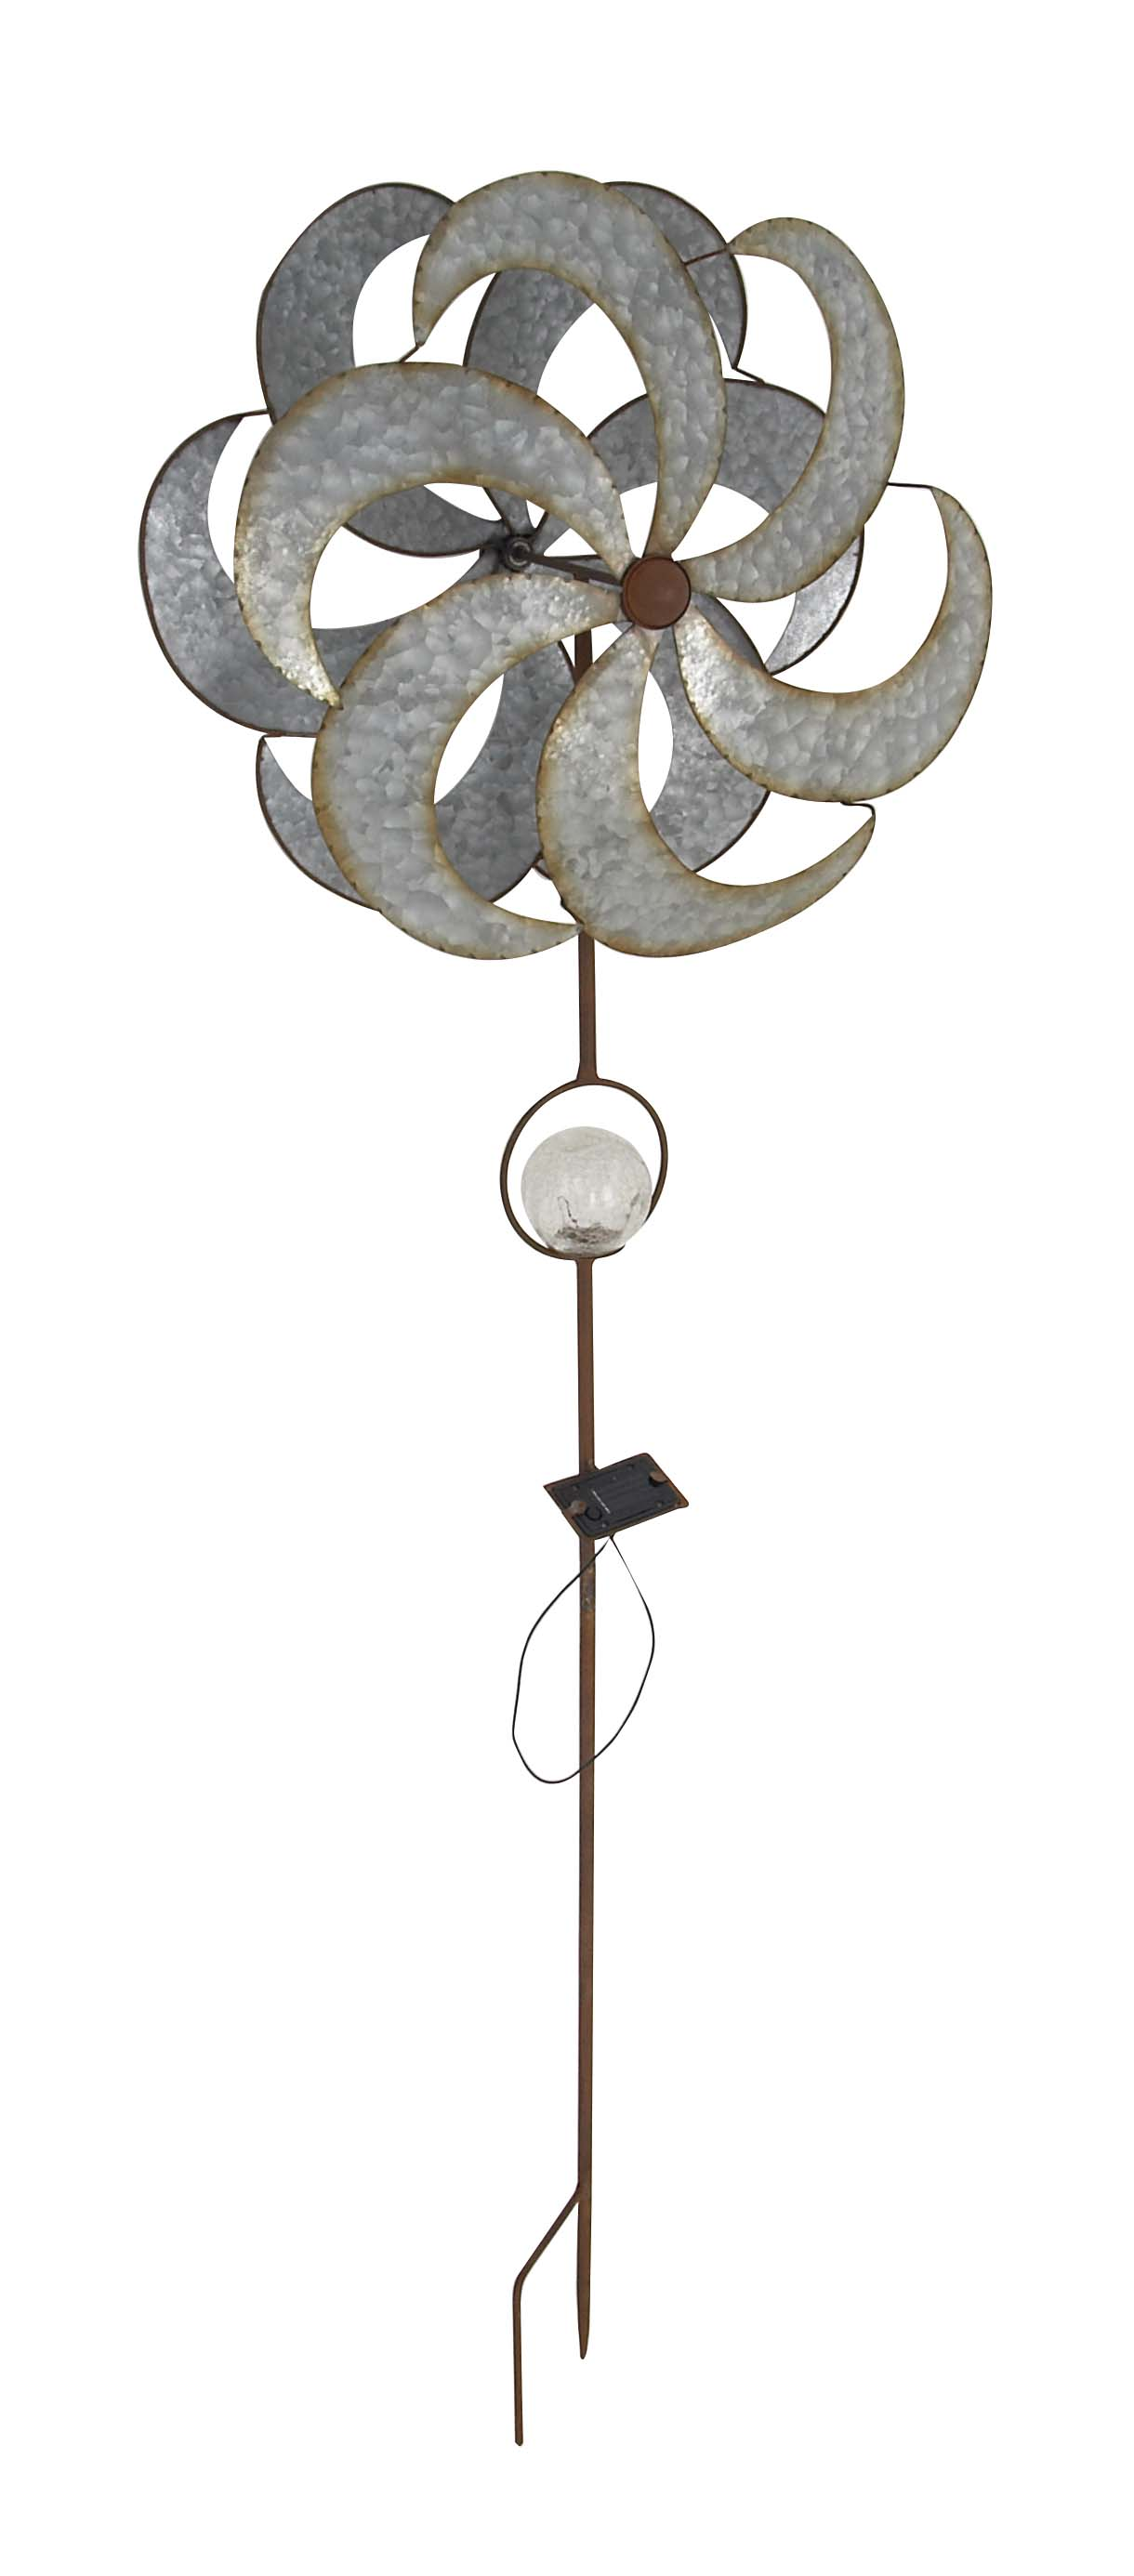 Decmode Rustic Iron Solar 6-Bladed Windmill, Silver by DecMode